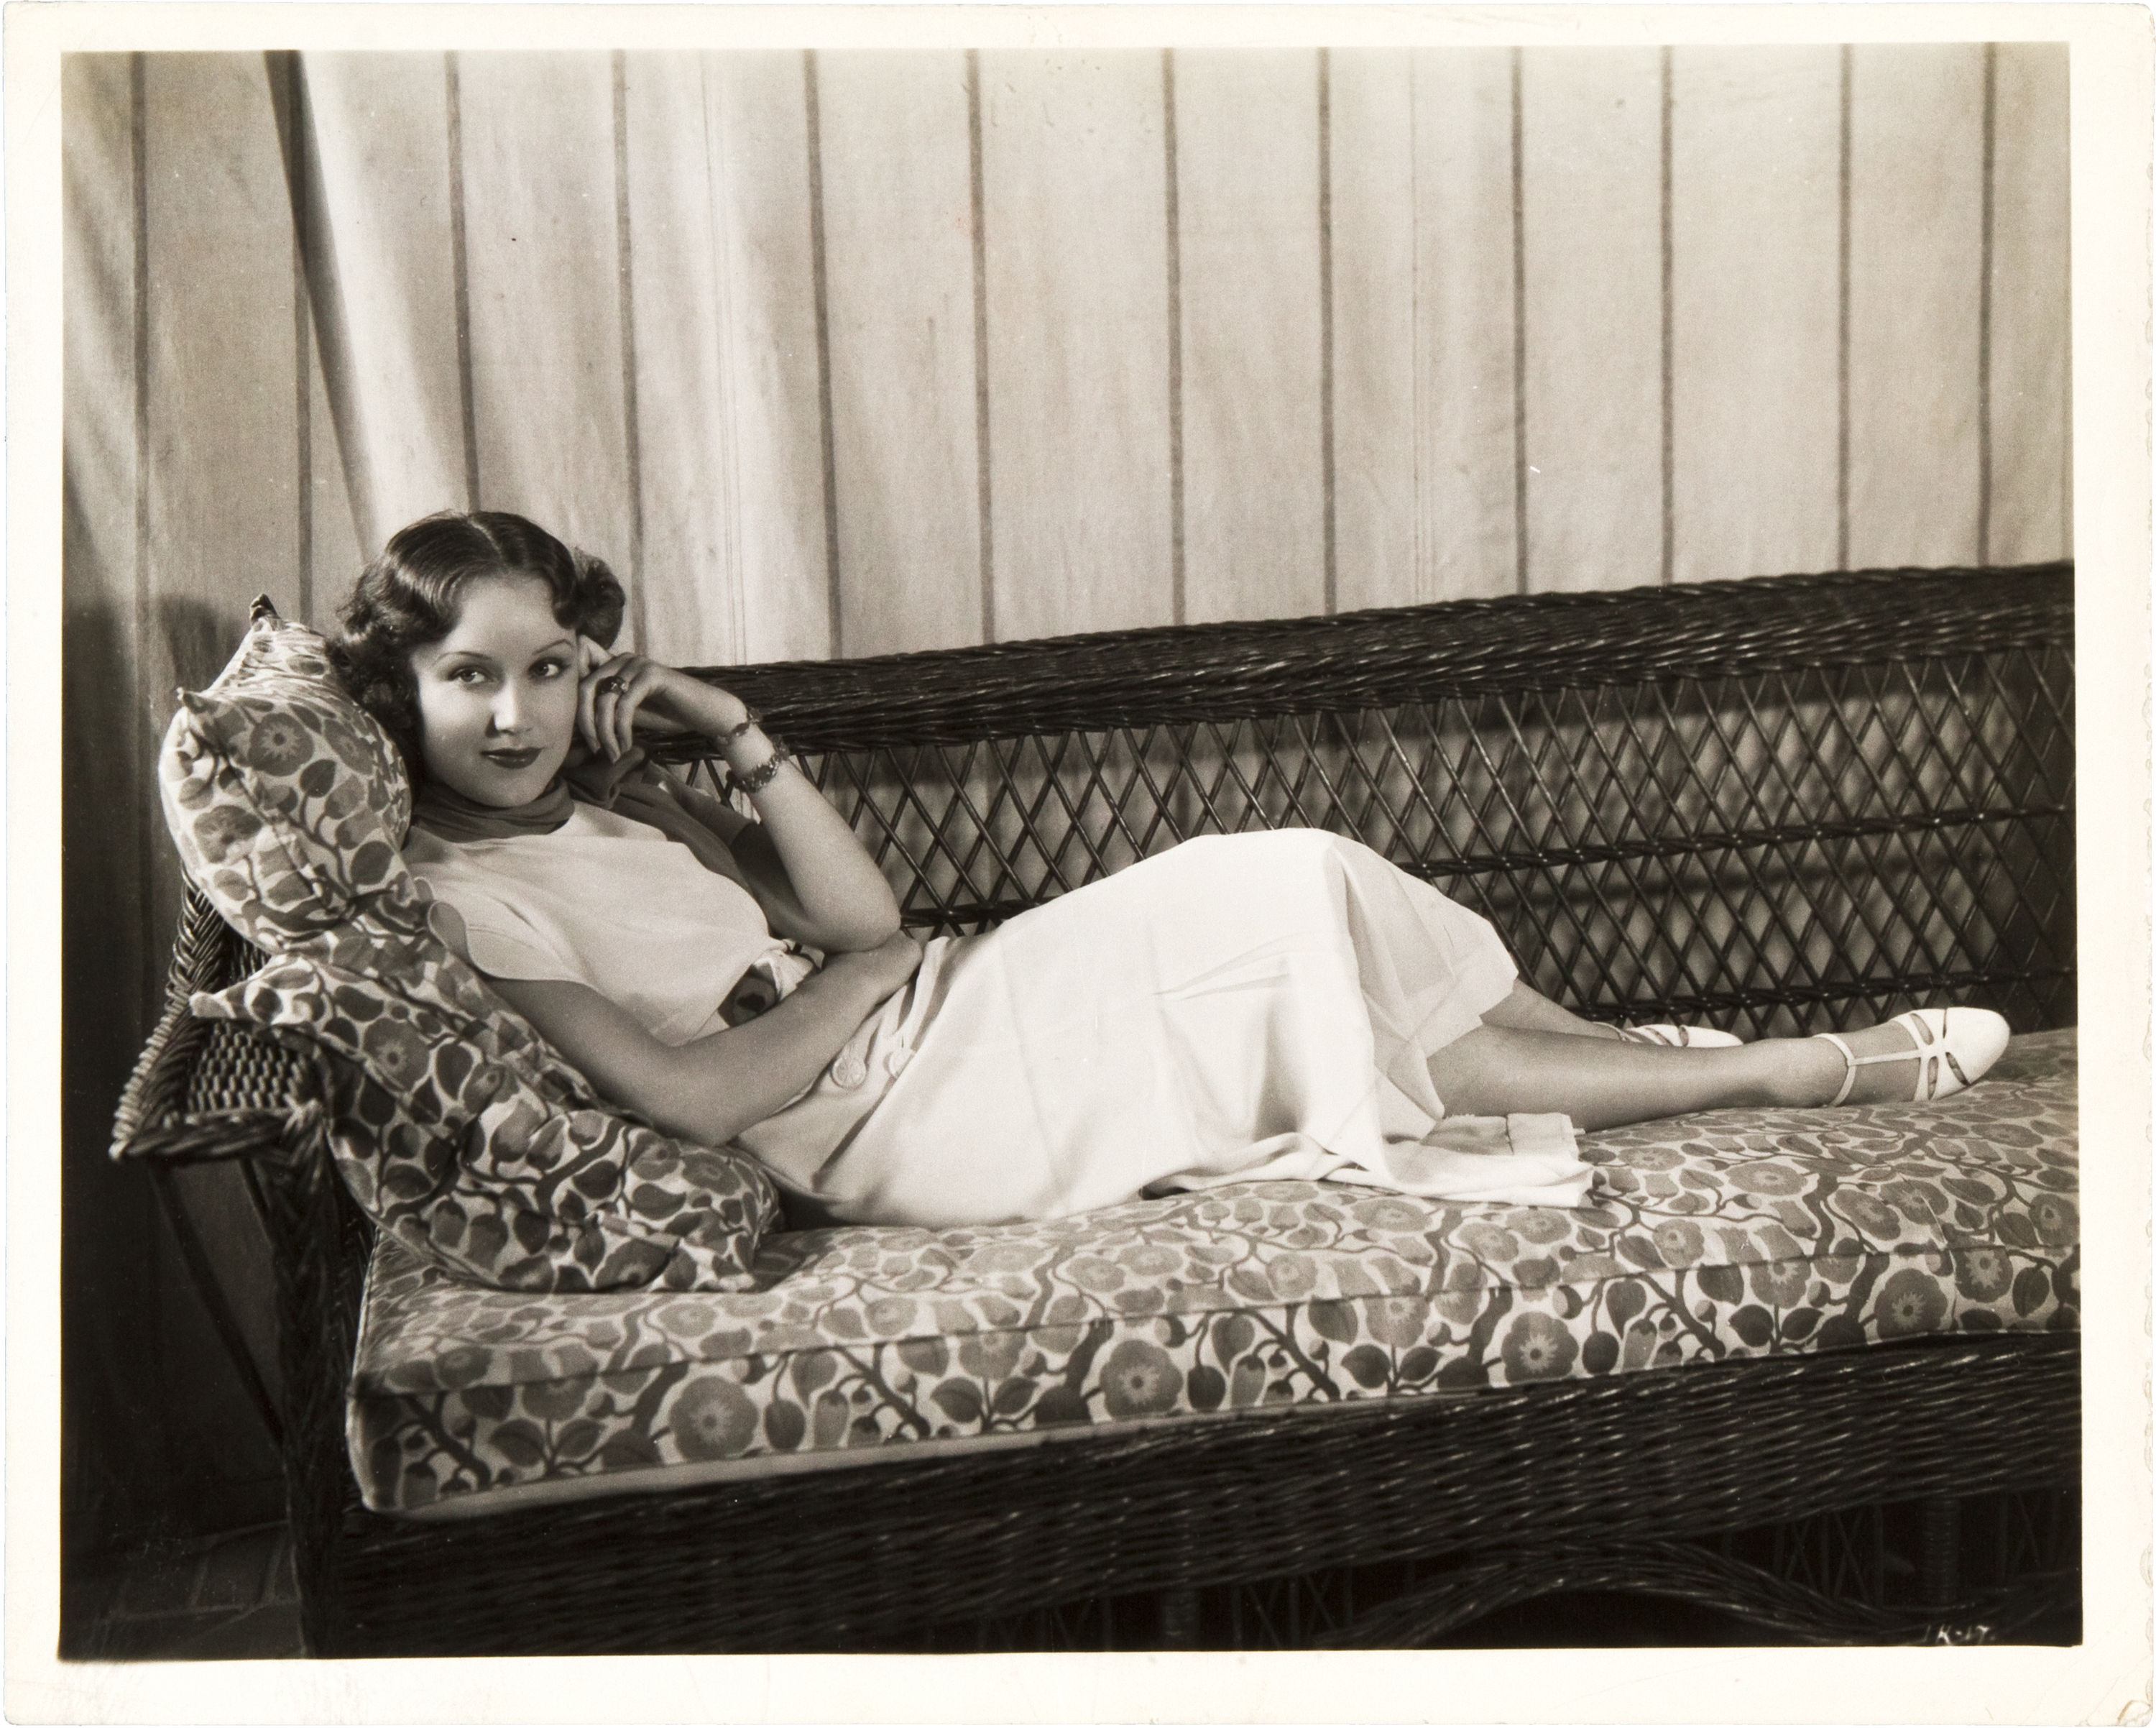 Fay Wray lounging on a sofa